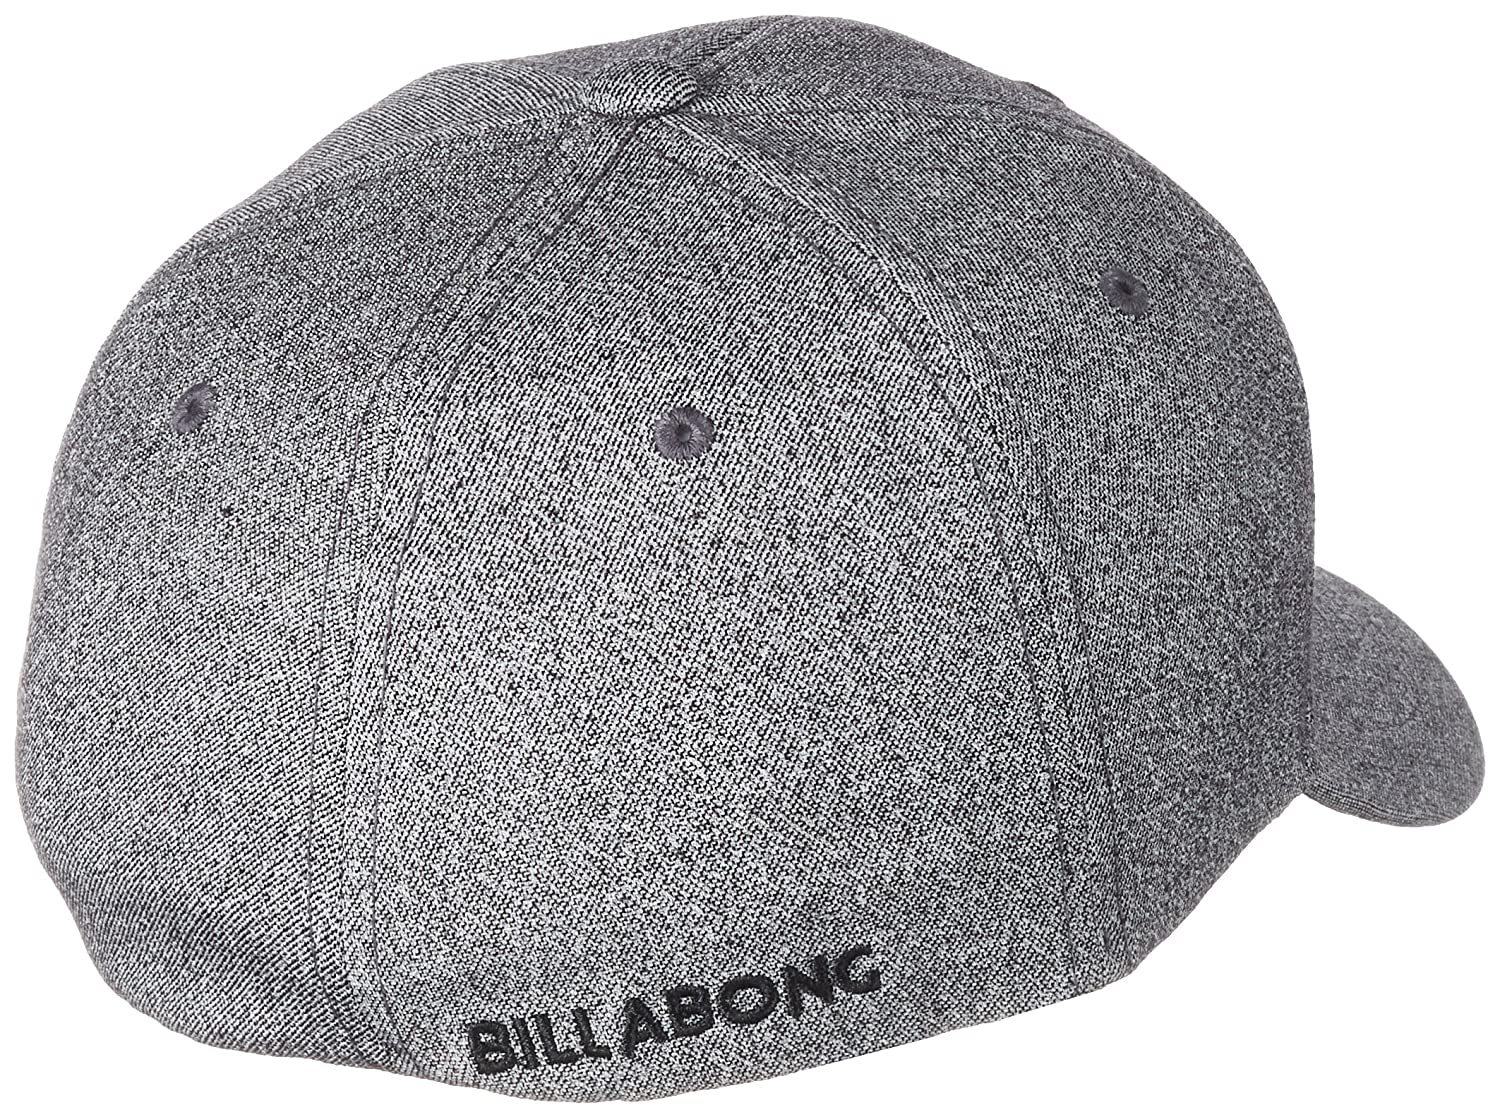 Amazon.com: Billabong 2016 Station Flexfit Cap in Silver U5CF02: Health & Personal Care